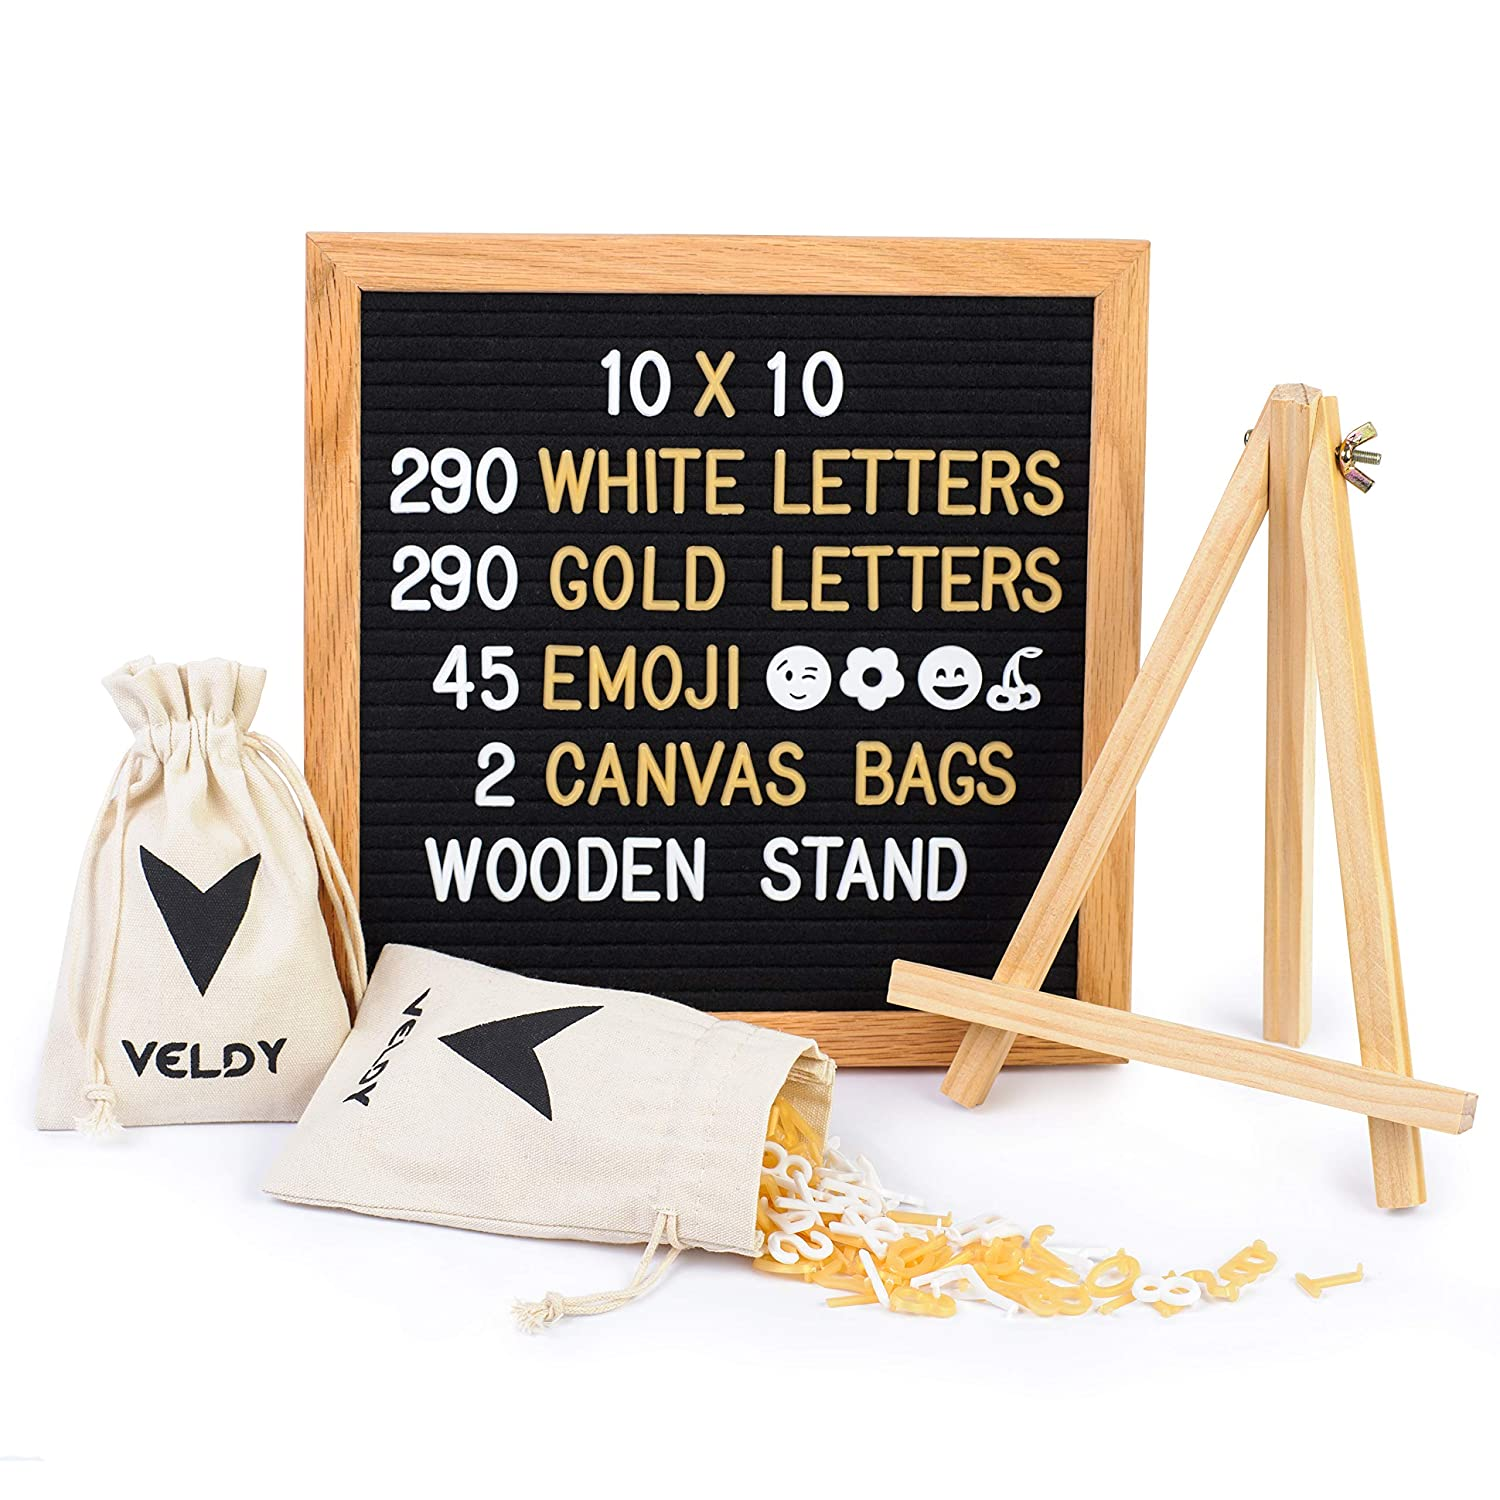 Letter Board - Felt Board for Changeable Messages- Oak Frame- 10x10 Black- 625 White and Gold Plastic Letters/Numbers and Emojis / 2 Storage Bags +Stand and Wall Mount for Home and Office Decoration Anyang Feeker Trading Co. Ltd.